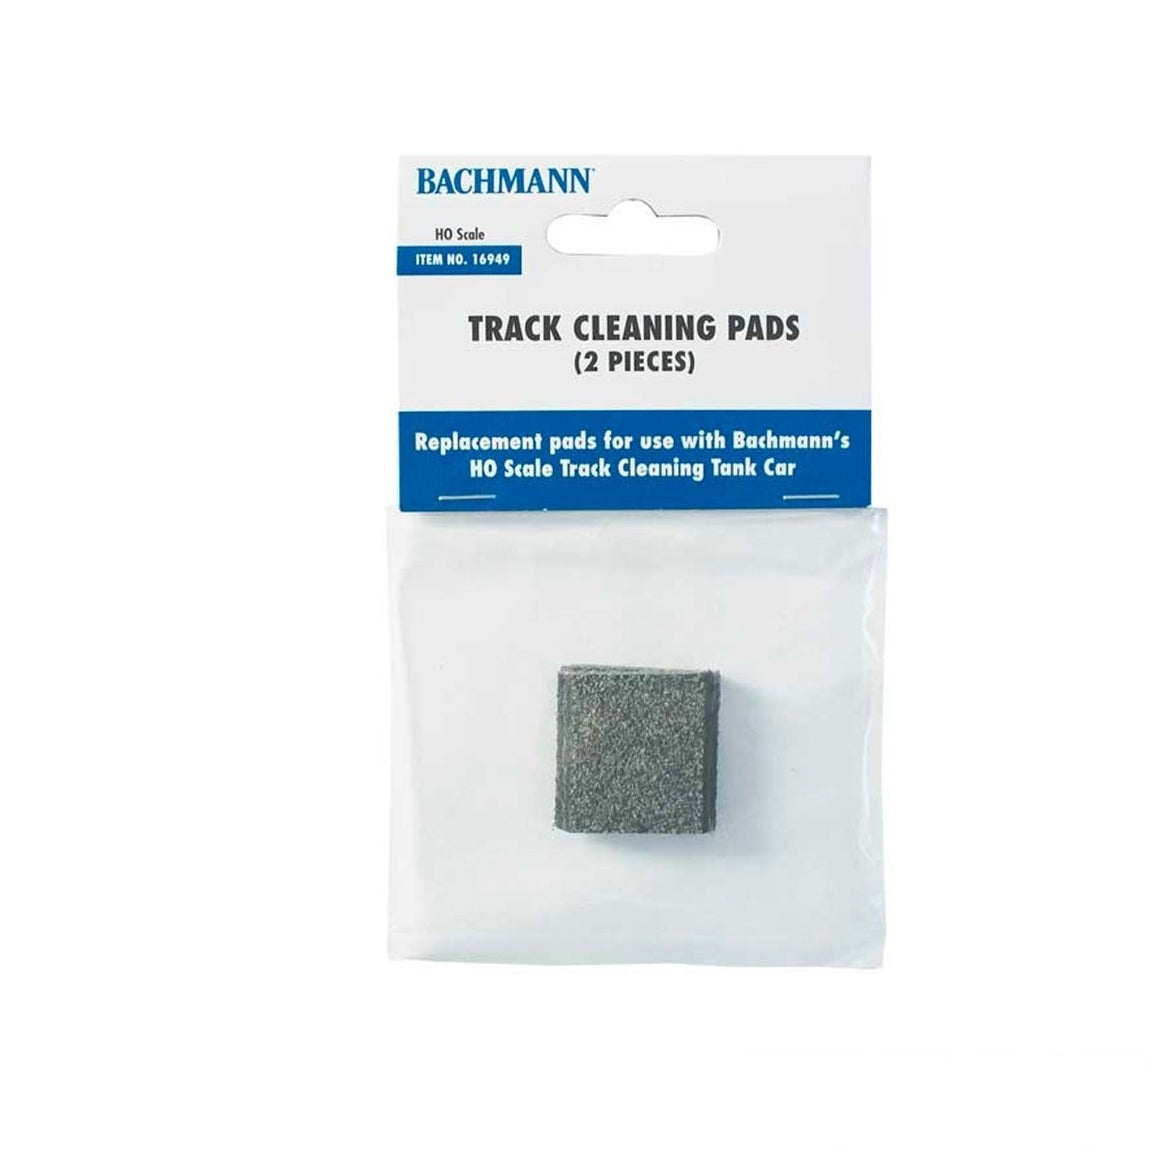 HO Scale: 40' Track Cleaning Boxcar Replacement Pads